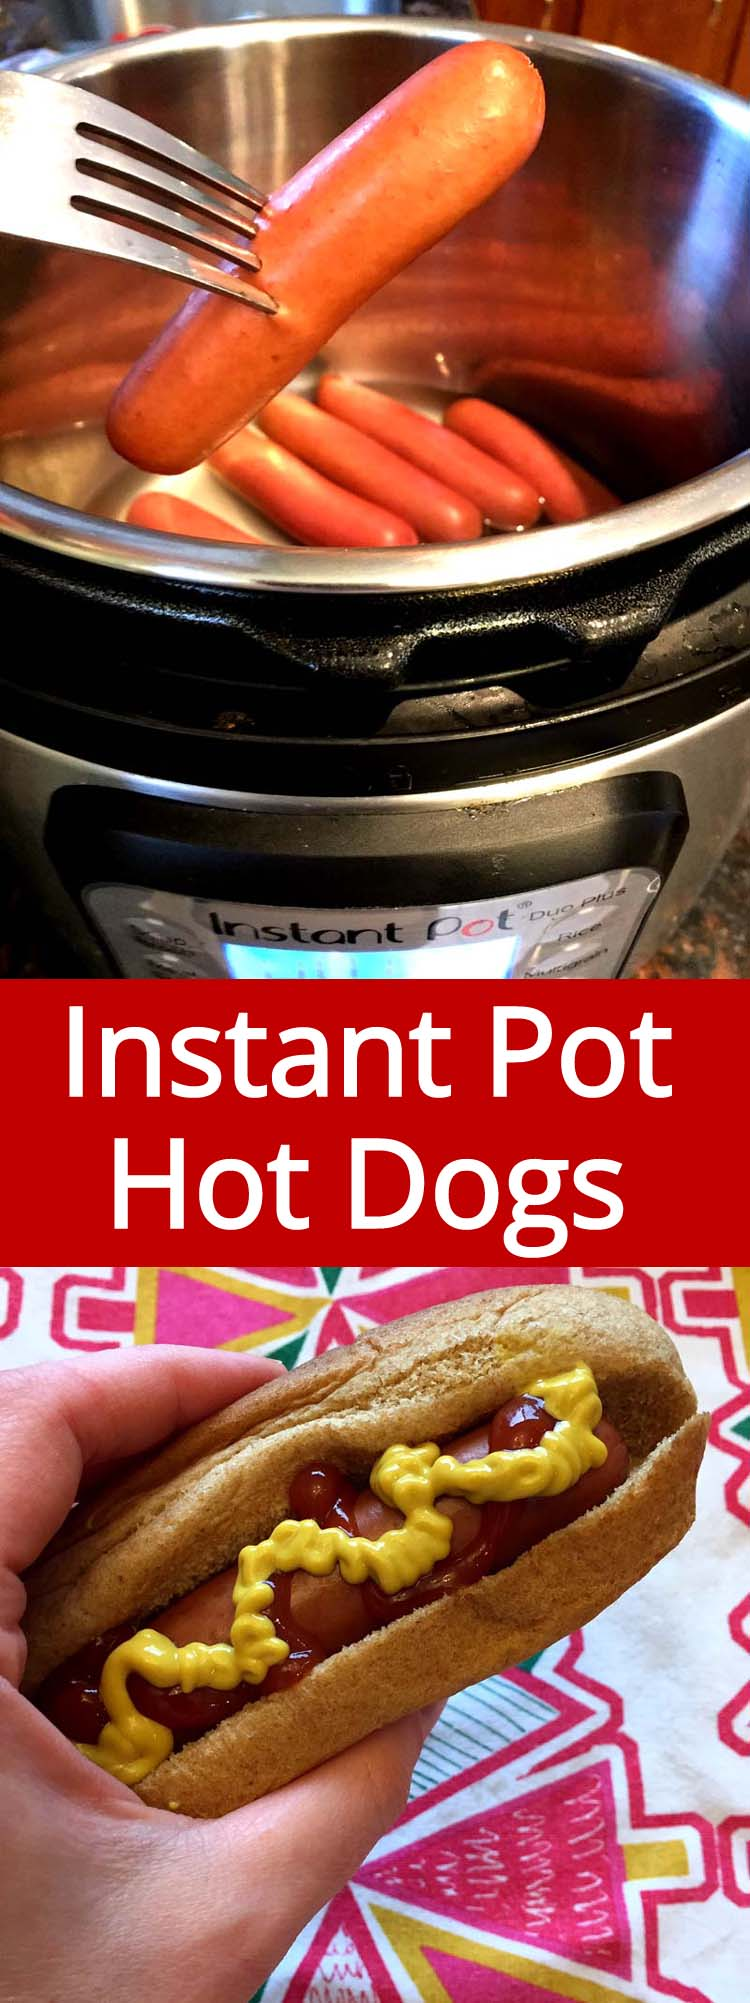 These Instant Pot hot dogs are amazing! Cook the whole package of hot dogs to perfection in minutes! I love Instant Pot!